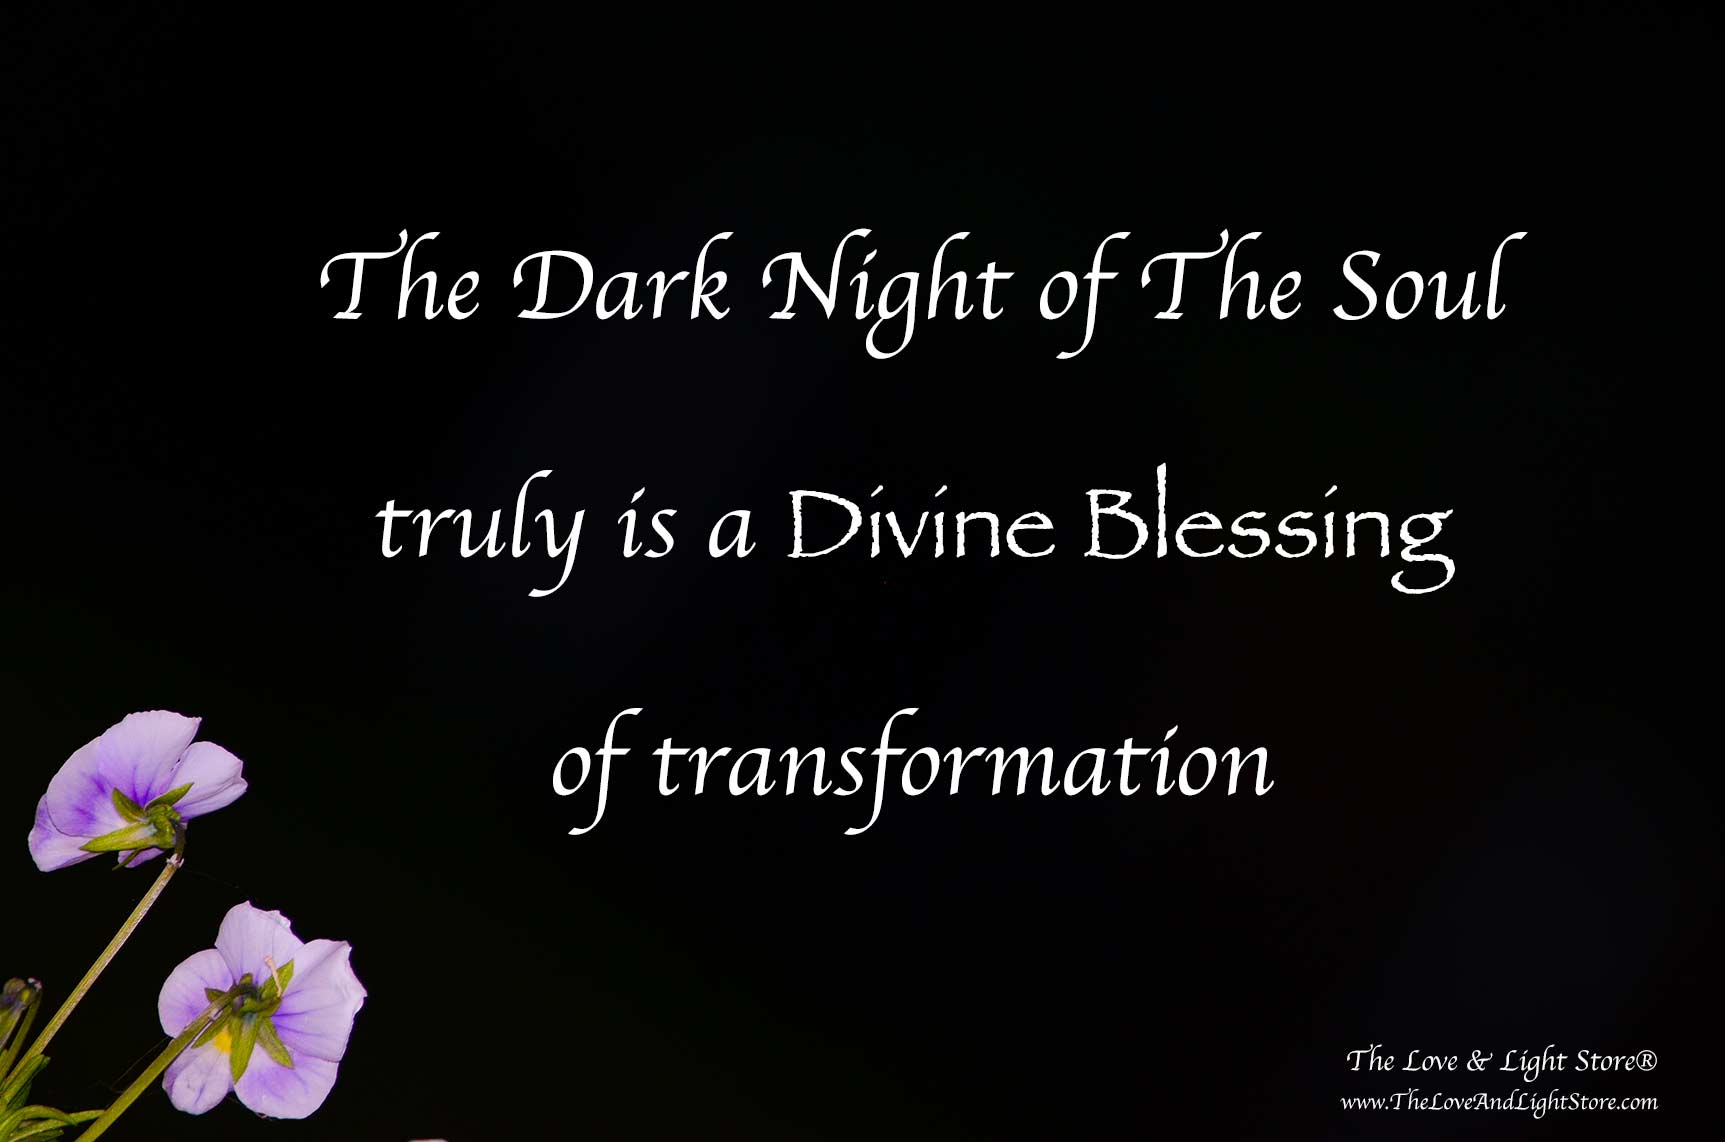 The Dark Night of The Soul, is nothing but a blessing - once we come to realize what it is. The darkness and also known as ego blindness then is truly something to be grateful about, to appreciate.